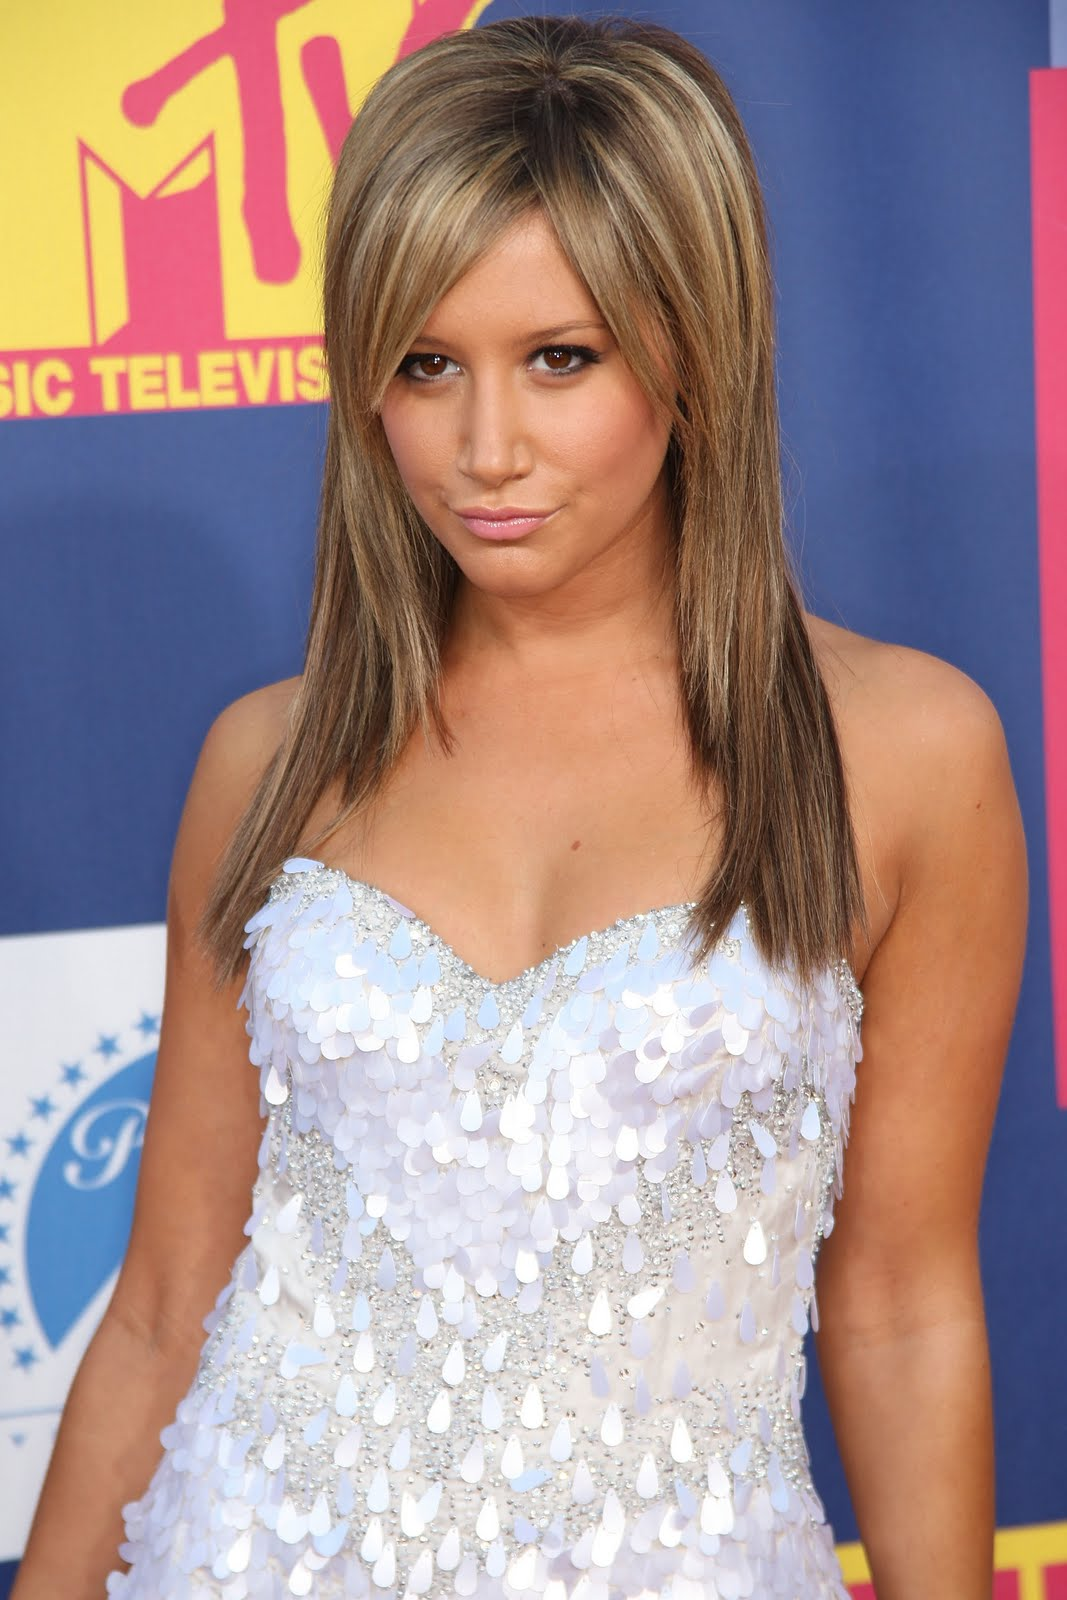 http://1.bp.blogspot.com/_MCy6UZ3NI5M/S-yNghh0i_I/AAAAAAAAKWQ/XMk0d3Am9rE/s1600/35452-ashley-tisdale-2008-mtv-video-music-awards-a.jpg